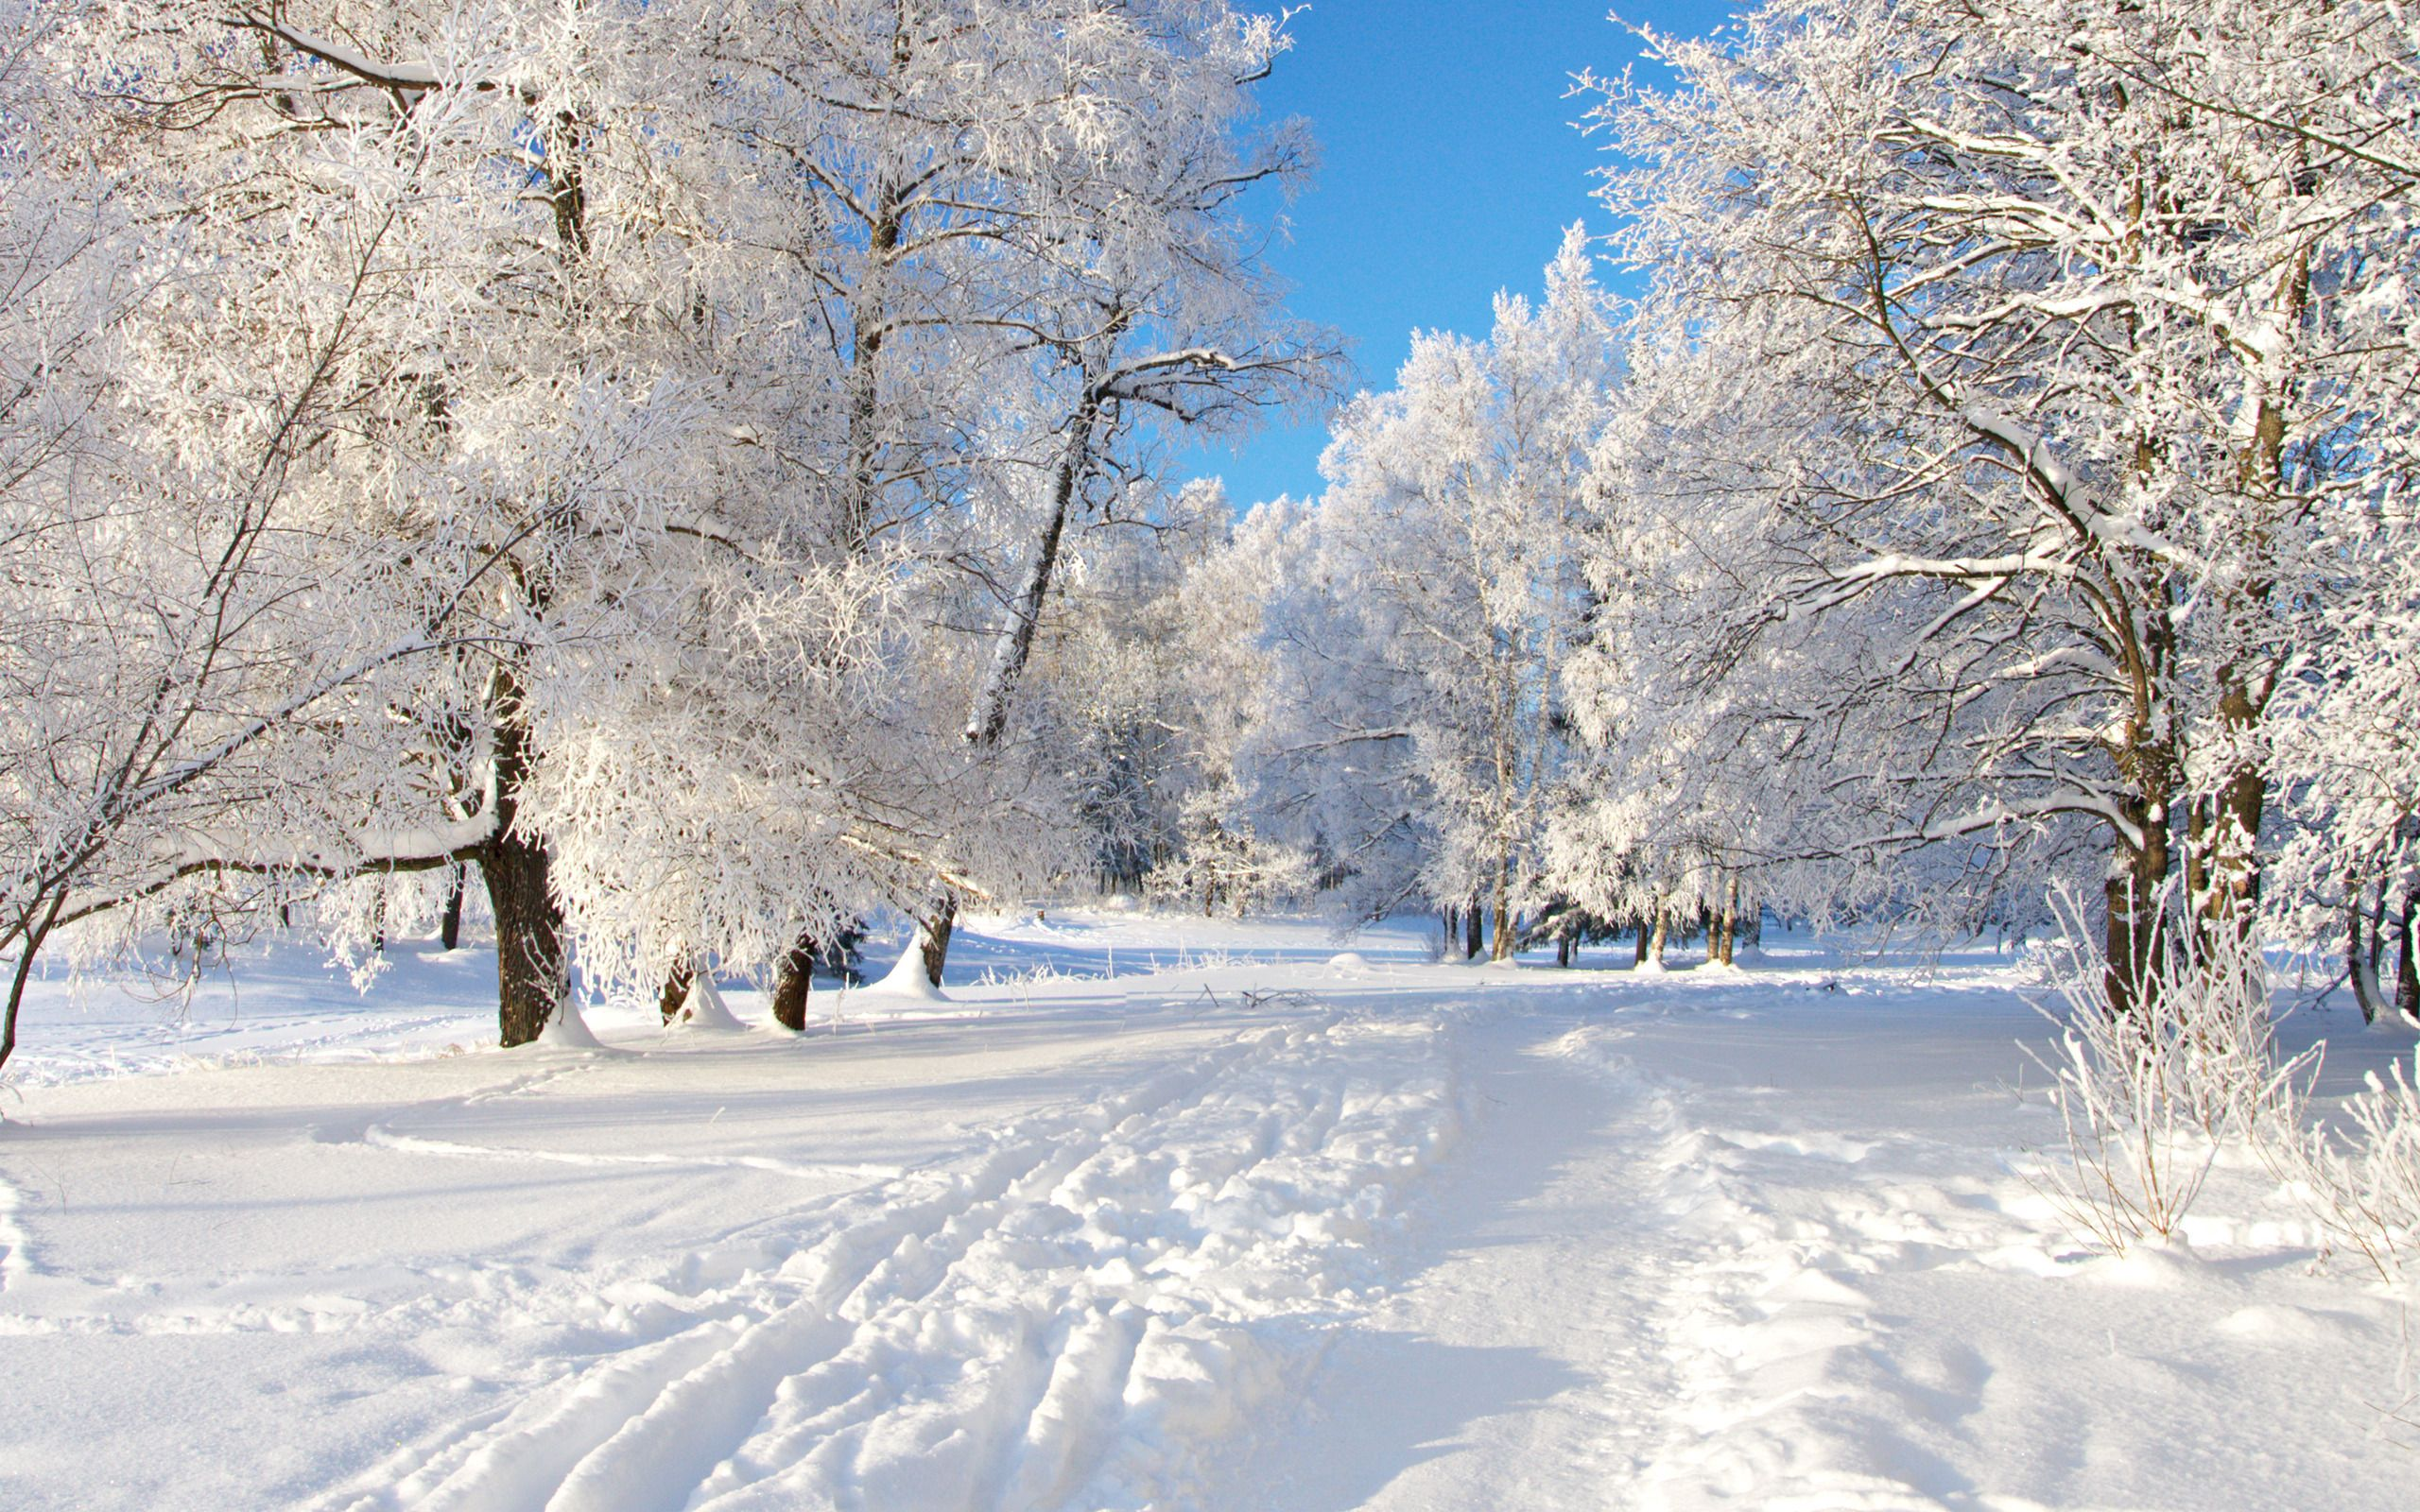 snowy nature wallpaper - photo #24